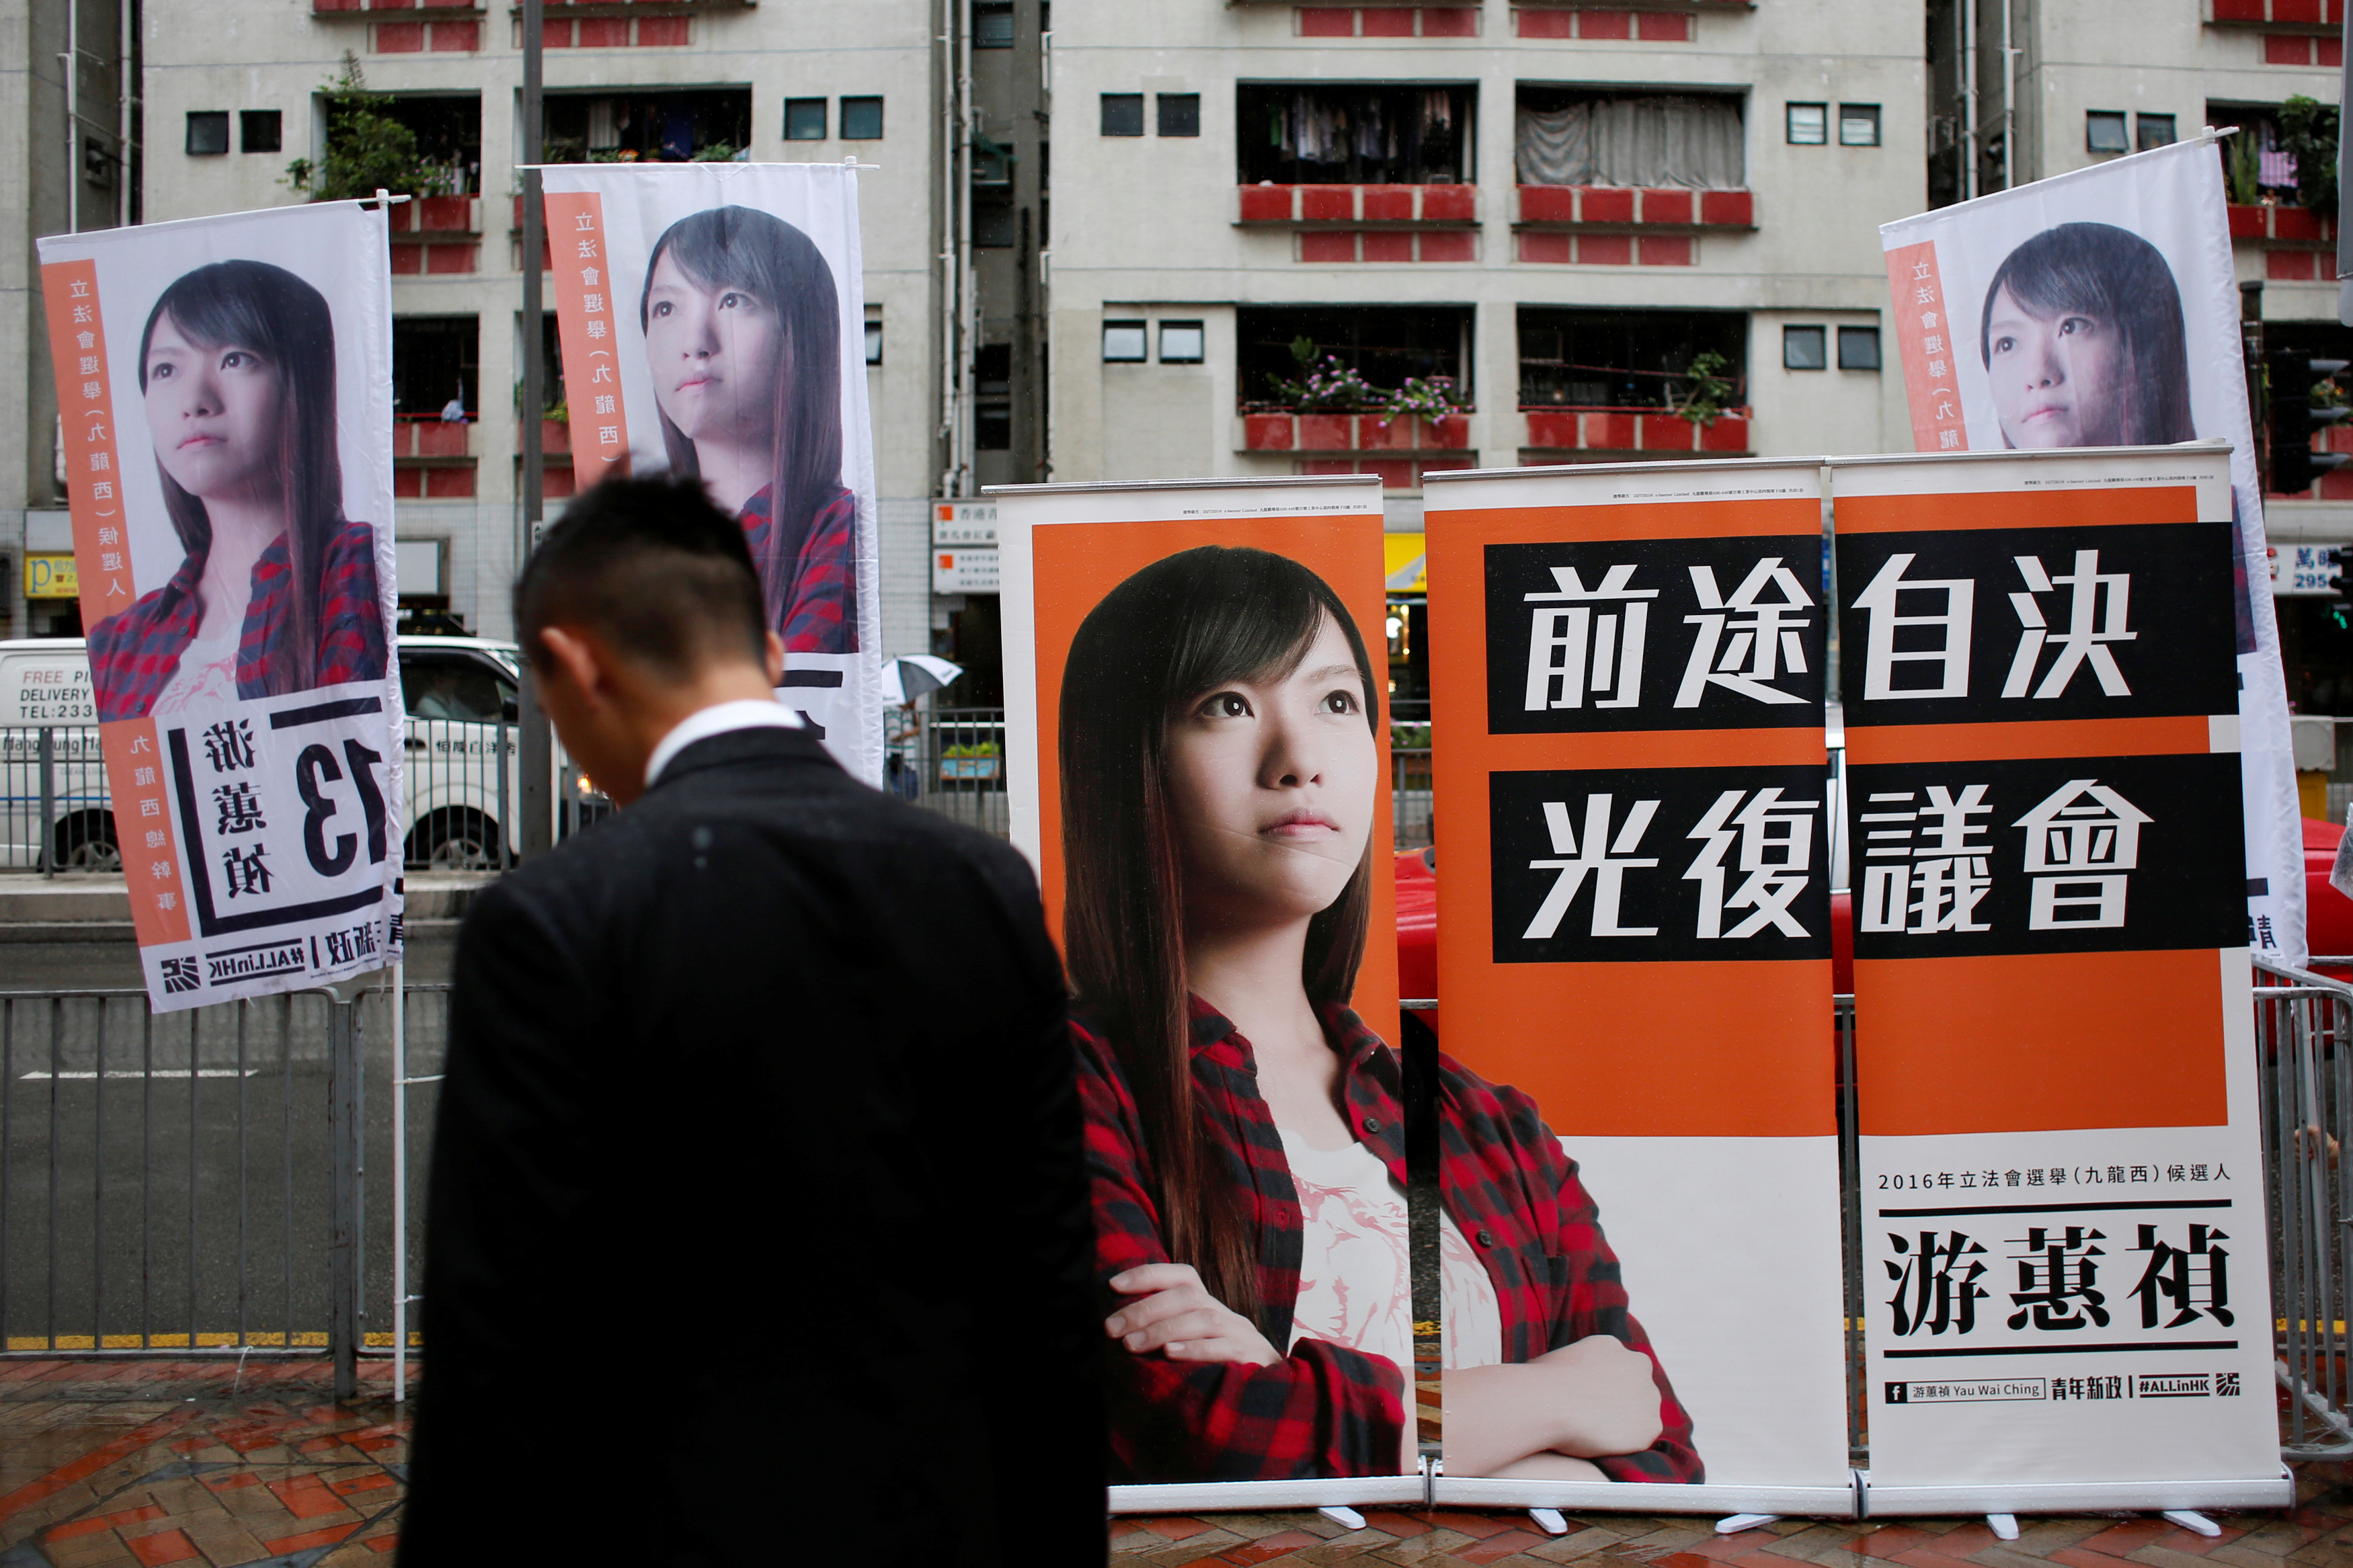 Campaign banners of Legislative Council election candidate Yau Wai-ching, member of political group Youngspiration, are displayed on a street in Hong Kong on Aug. 17, 2016